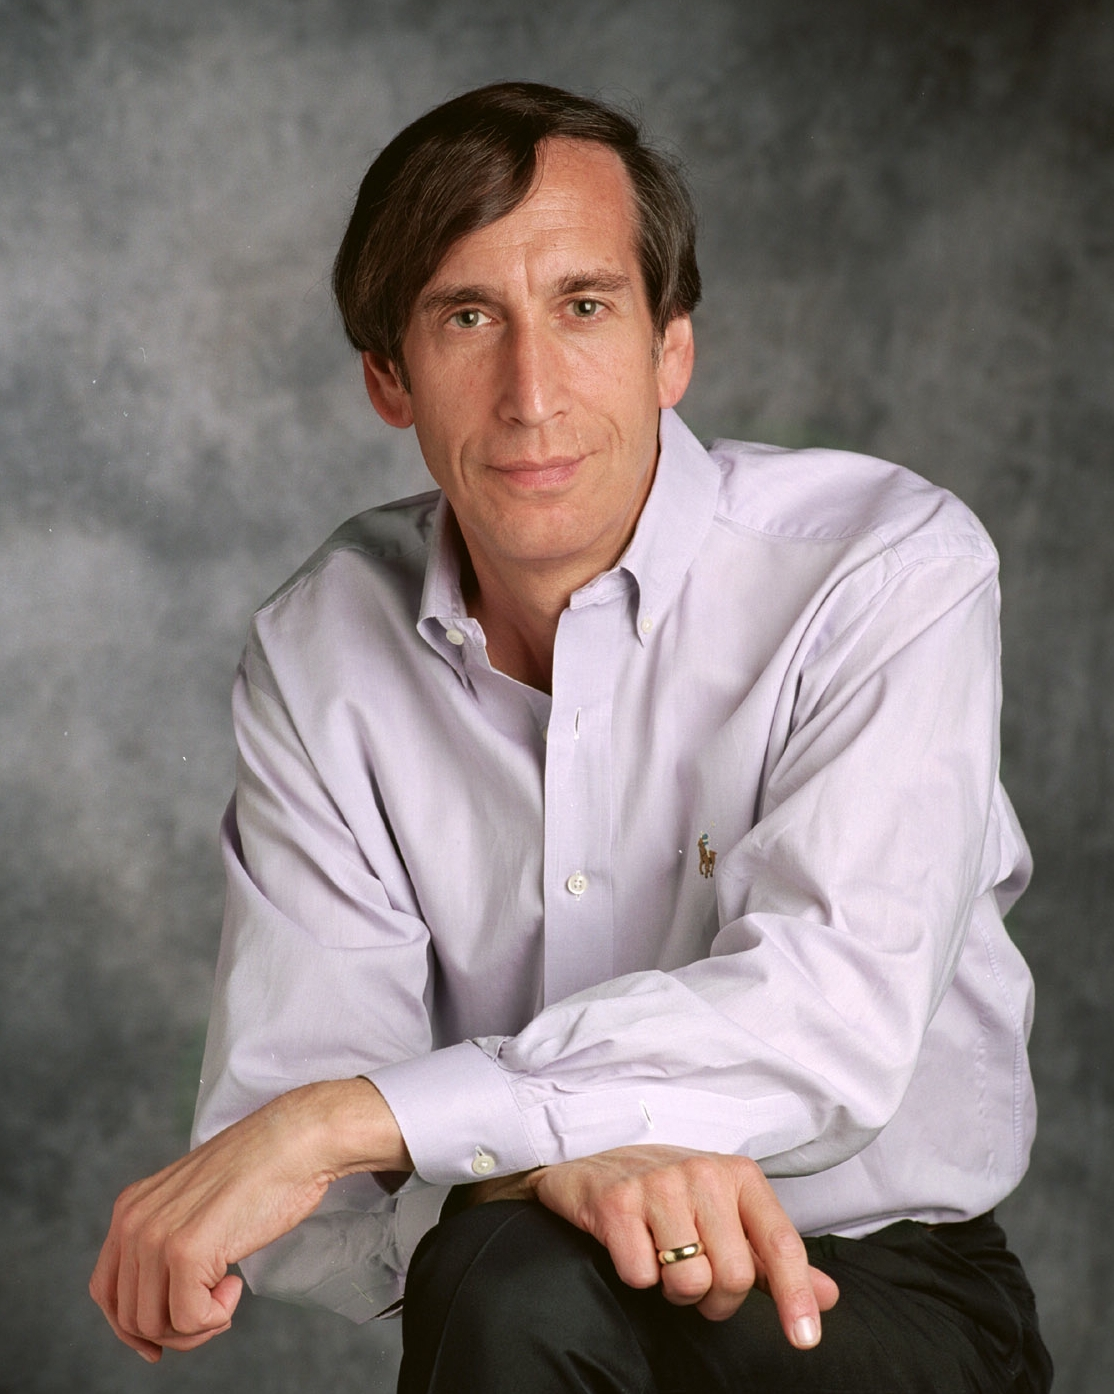 Former State Department official Aaron David Miller will give this year's David Gardner Lecture on the Humanities and Fine Arts on March 9 at 7 p.m. at the I.J. and Jeanne Wagner Jewish Community Center.